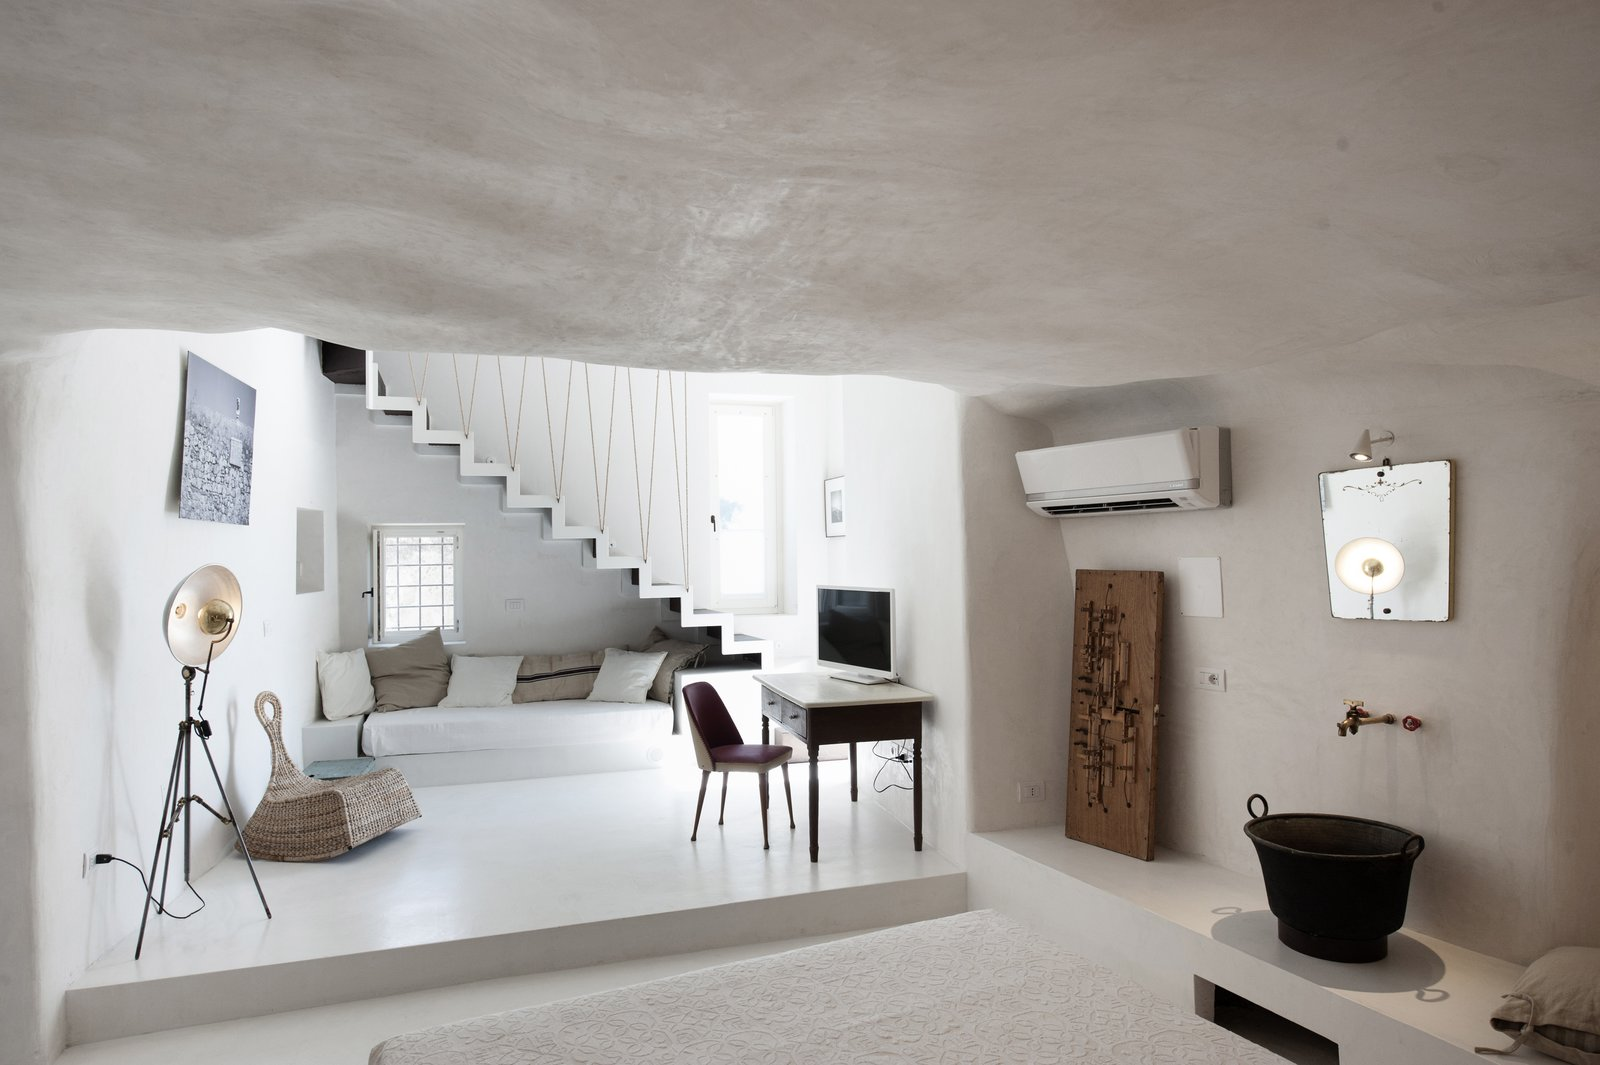 Living Room, Lamps, Chair, Floor Lighting, Bench, and Concrete Floor After relocating from Milan to the small Baroque town of Modica in Sicily, architect couple Marco Giunta and Viviana Haddad  purchased and restored an old house they found with locally sourced stones, tiles and plaster. They now operate it as Casa Talia – a boutique hotel where guests can experience life at a more leisurely pace.  Photo 6 of 11 in Ever Wanted to Stay in a Cave That's Actually Pretty Modern Inside?